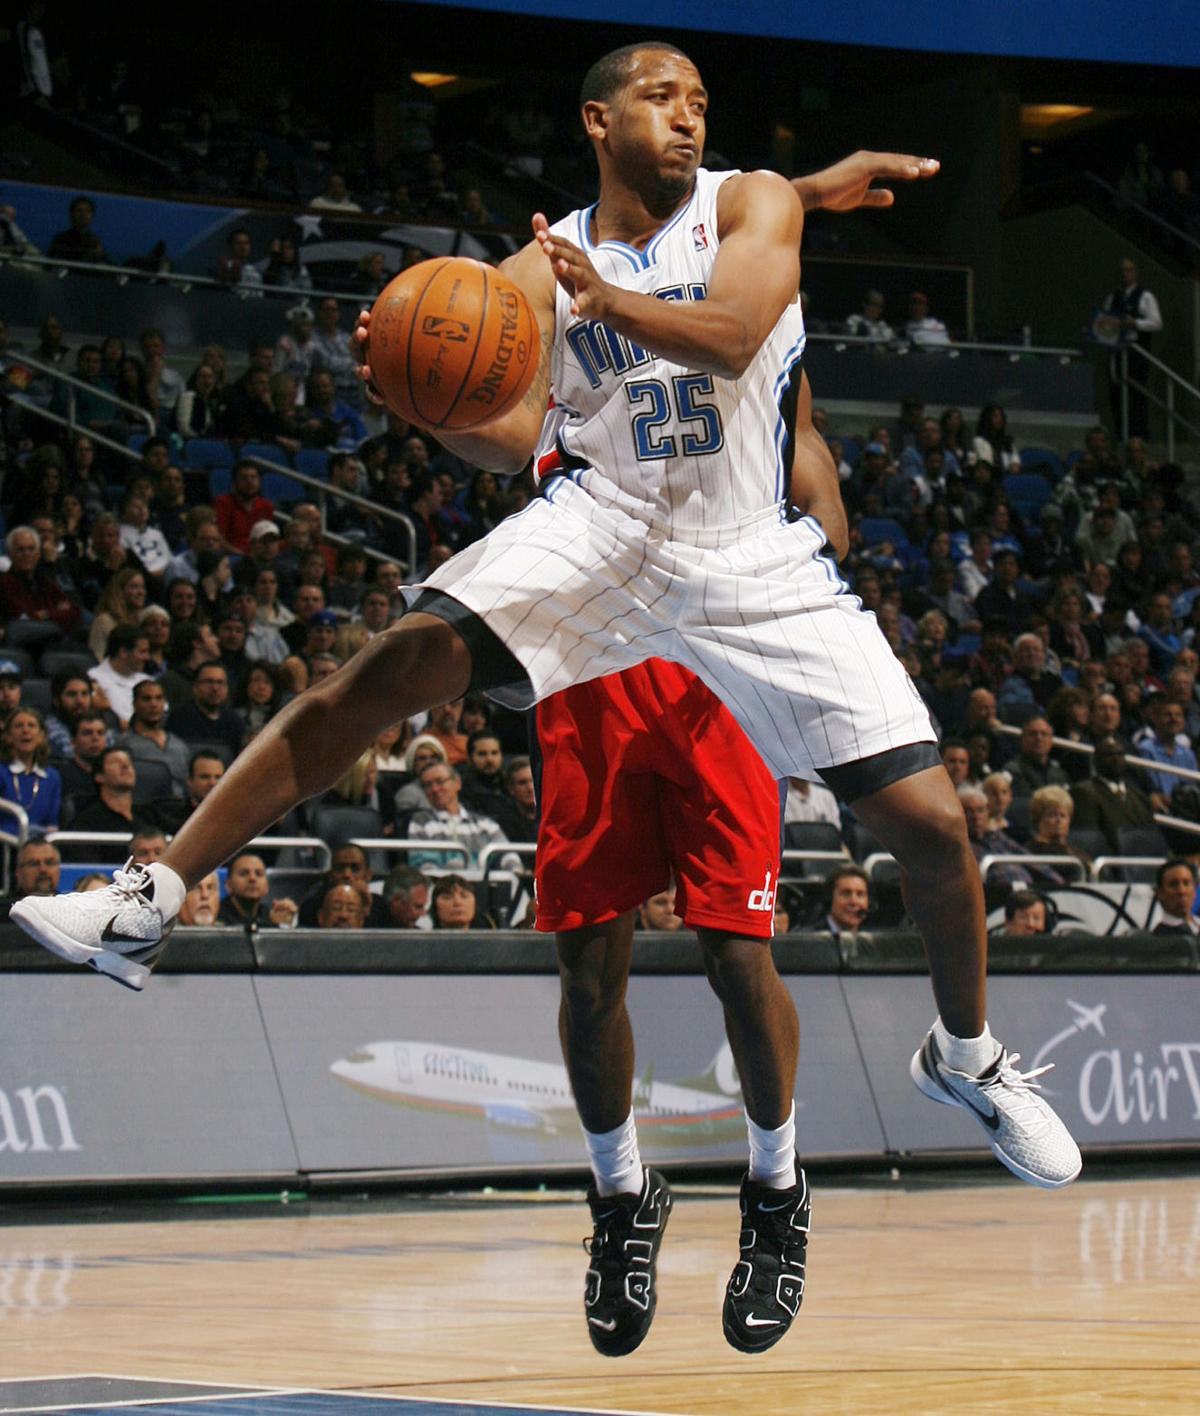 In a January 2012 file image, the Orlando Magic's Chris Duhon leaps to pass against the Washington Wizards at the Amway Center in Orlando, Fla. Duhon, who retired from the NBA in 2013, will be an assistant at Illinois State in the 2018-19 season.